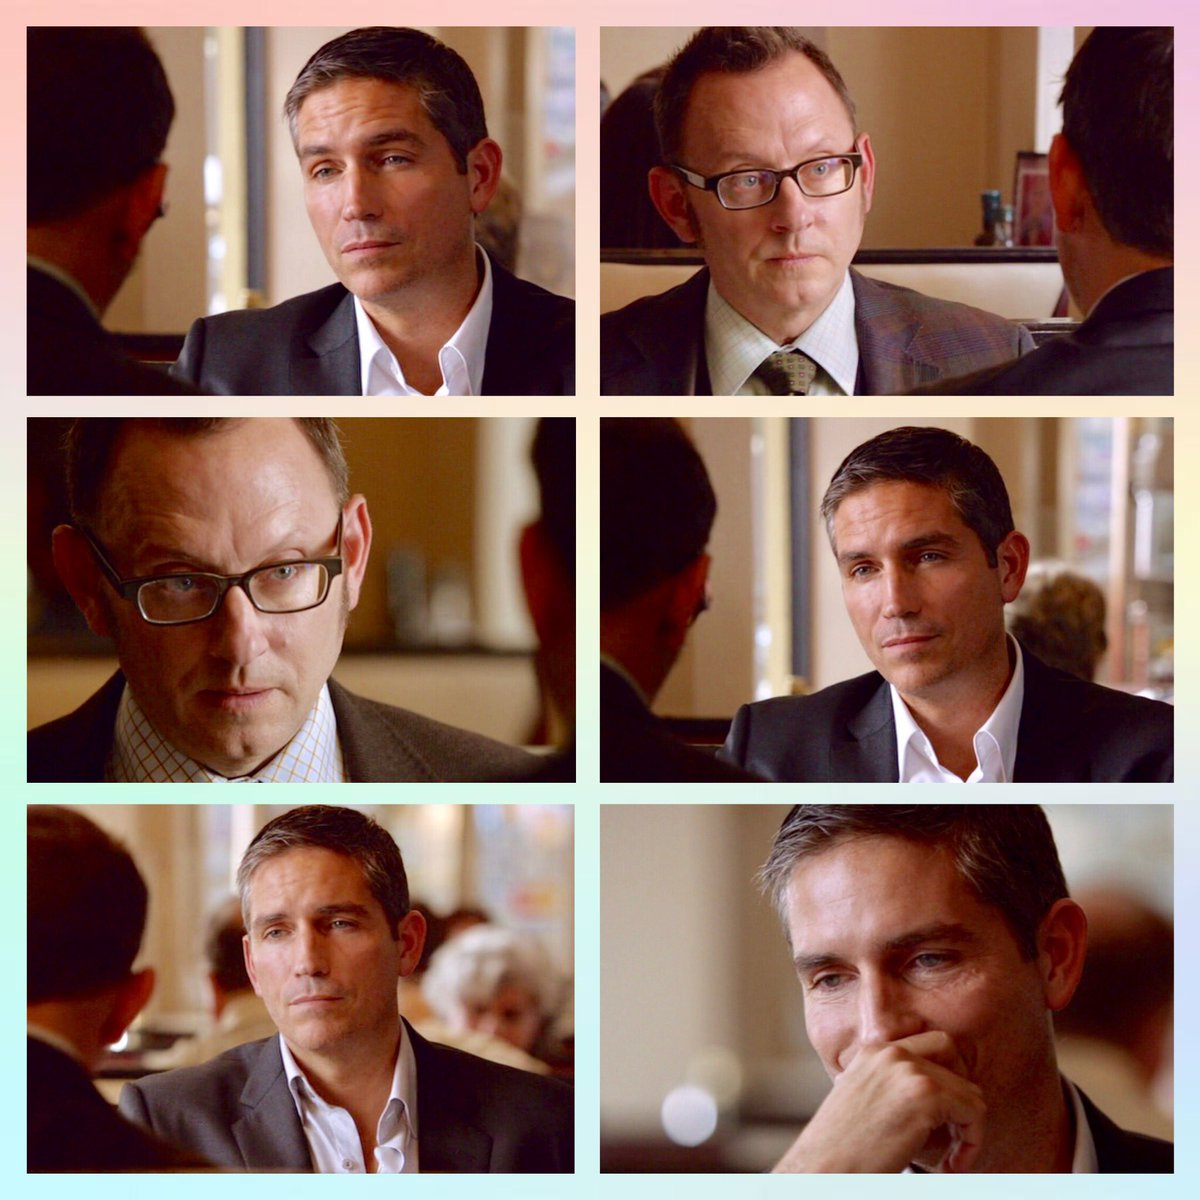 #PersonOfInterest #JimCaviezel #MichaelEmerson #JohnReese #HaroldFinch  &quot;Try the eggs Benedict, Mr.Reese. I've had them many times!&quot;  Happy #NationalEggsBenedictDay everyone! #MondayMotivaton<br>http://pic.twitter.com/1Eb0liceLB